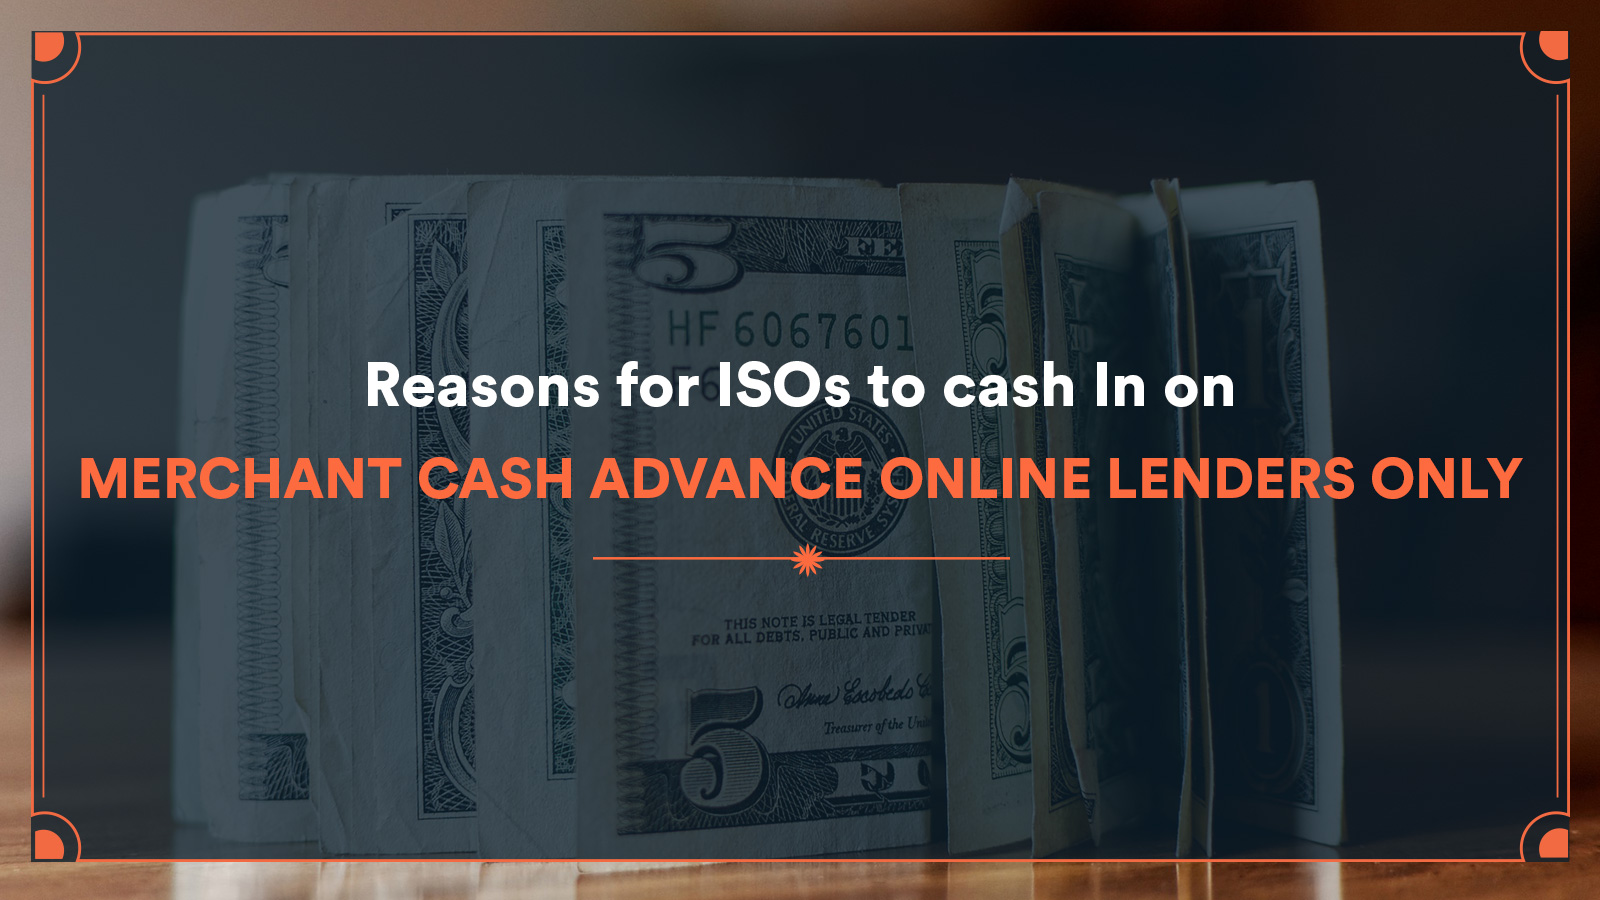 cash advance online lenders only